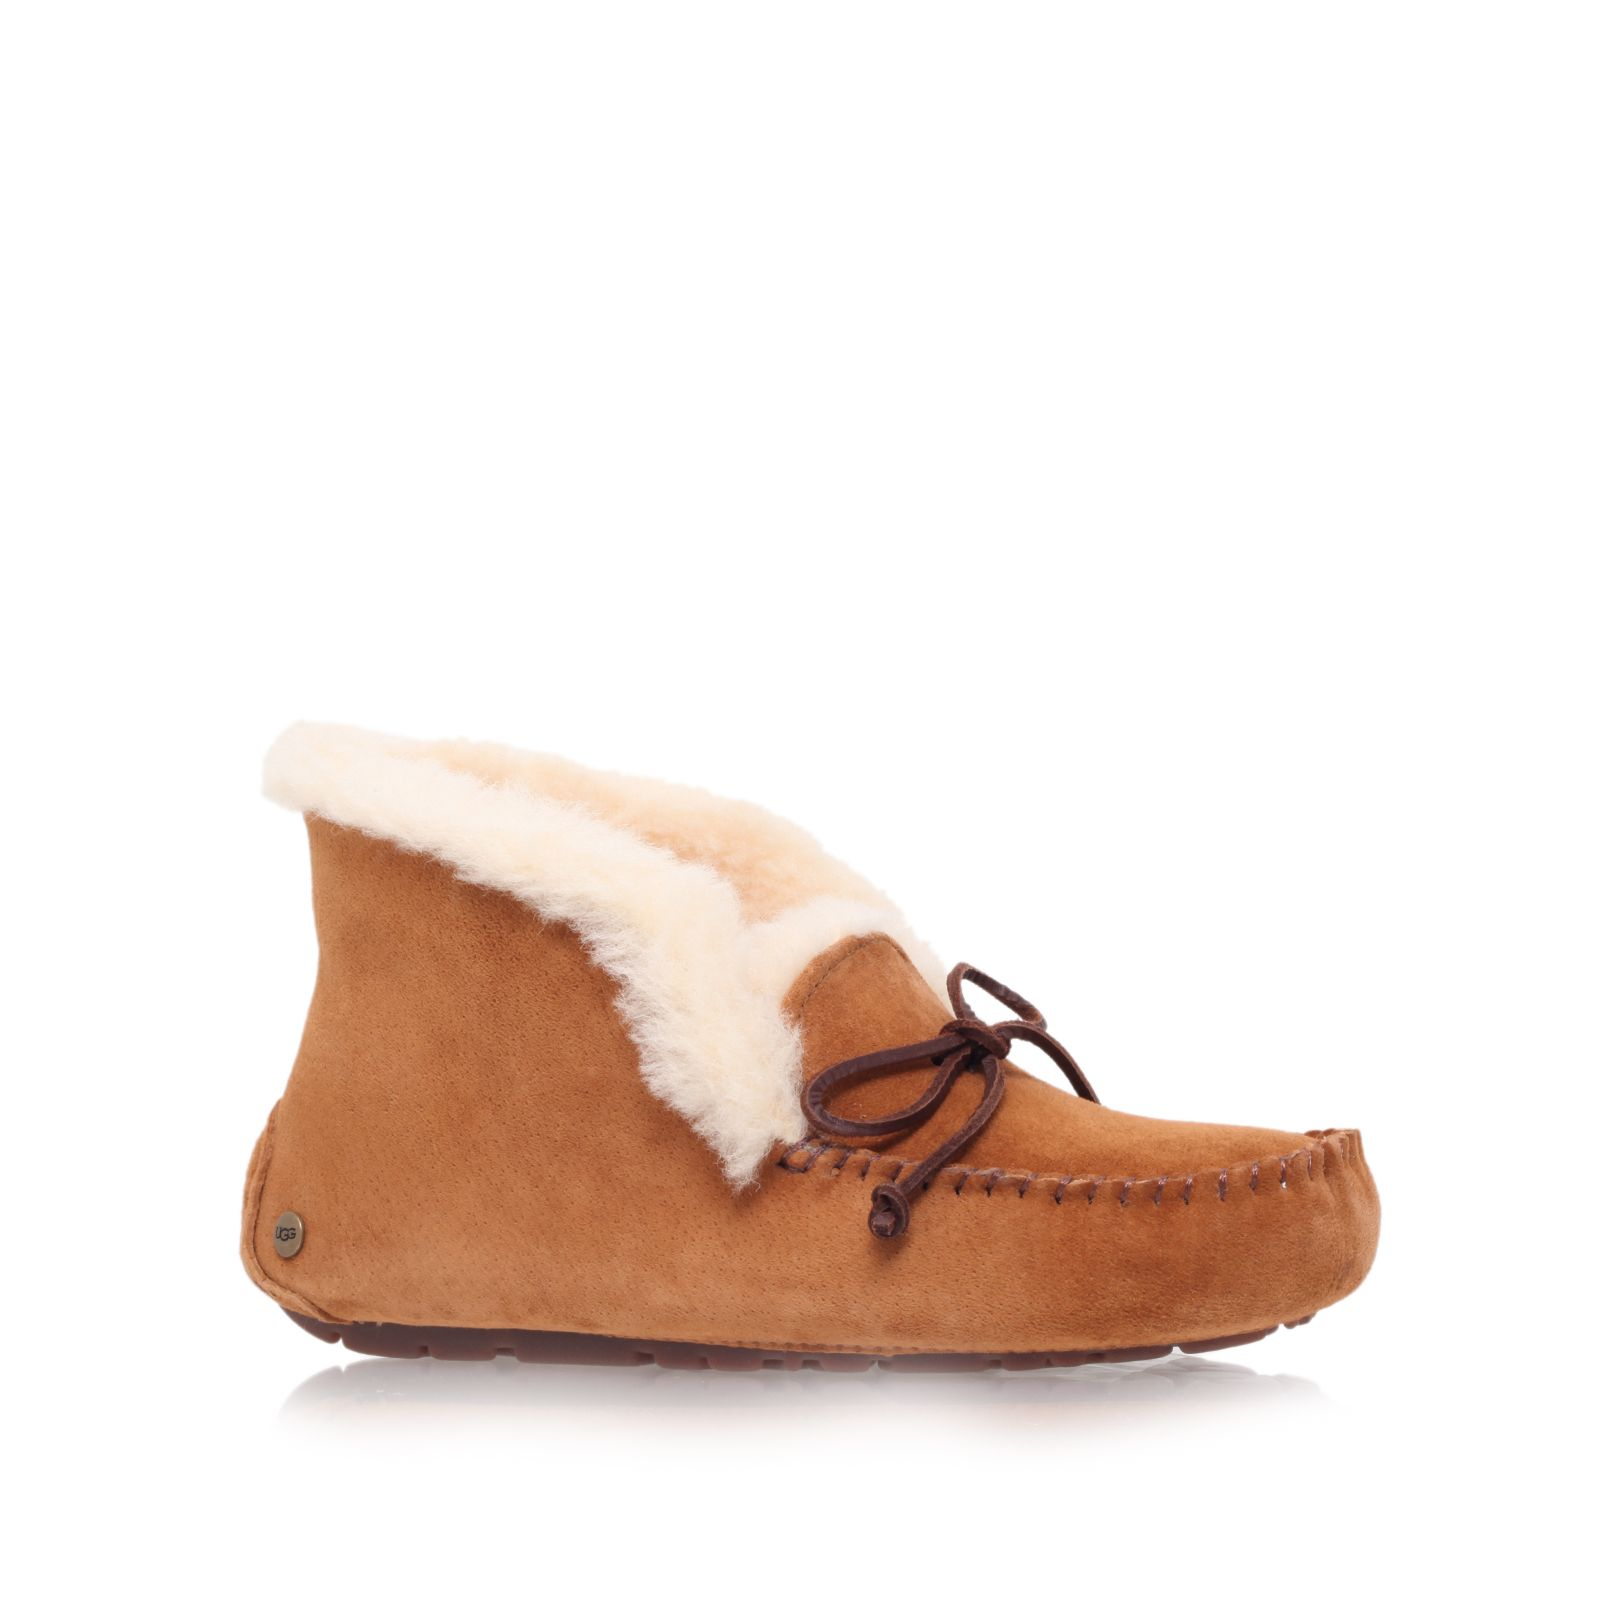 Ugg Alena Slipper Ankle Boots in Brown | Lyst